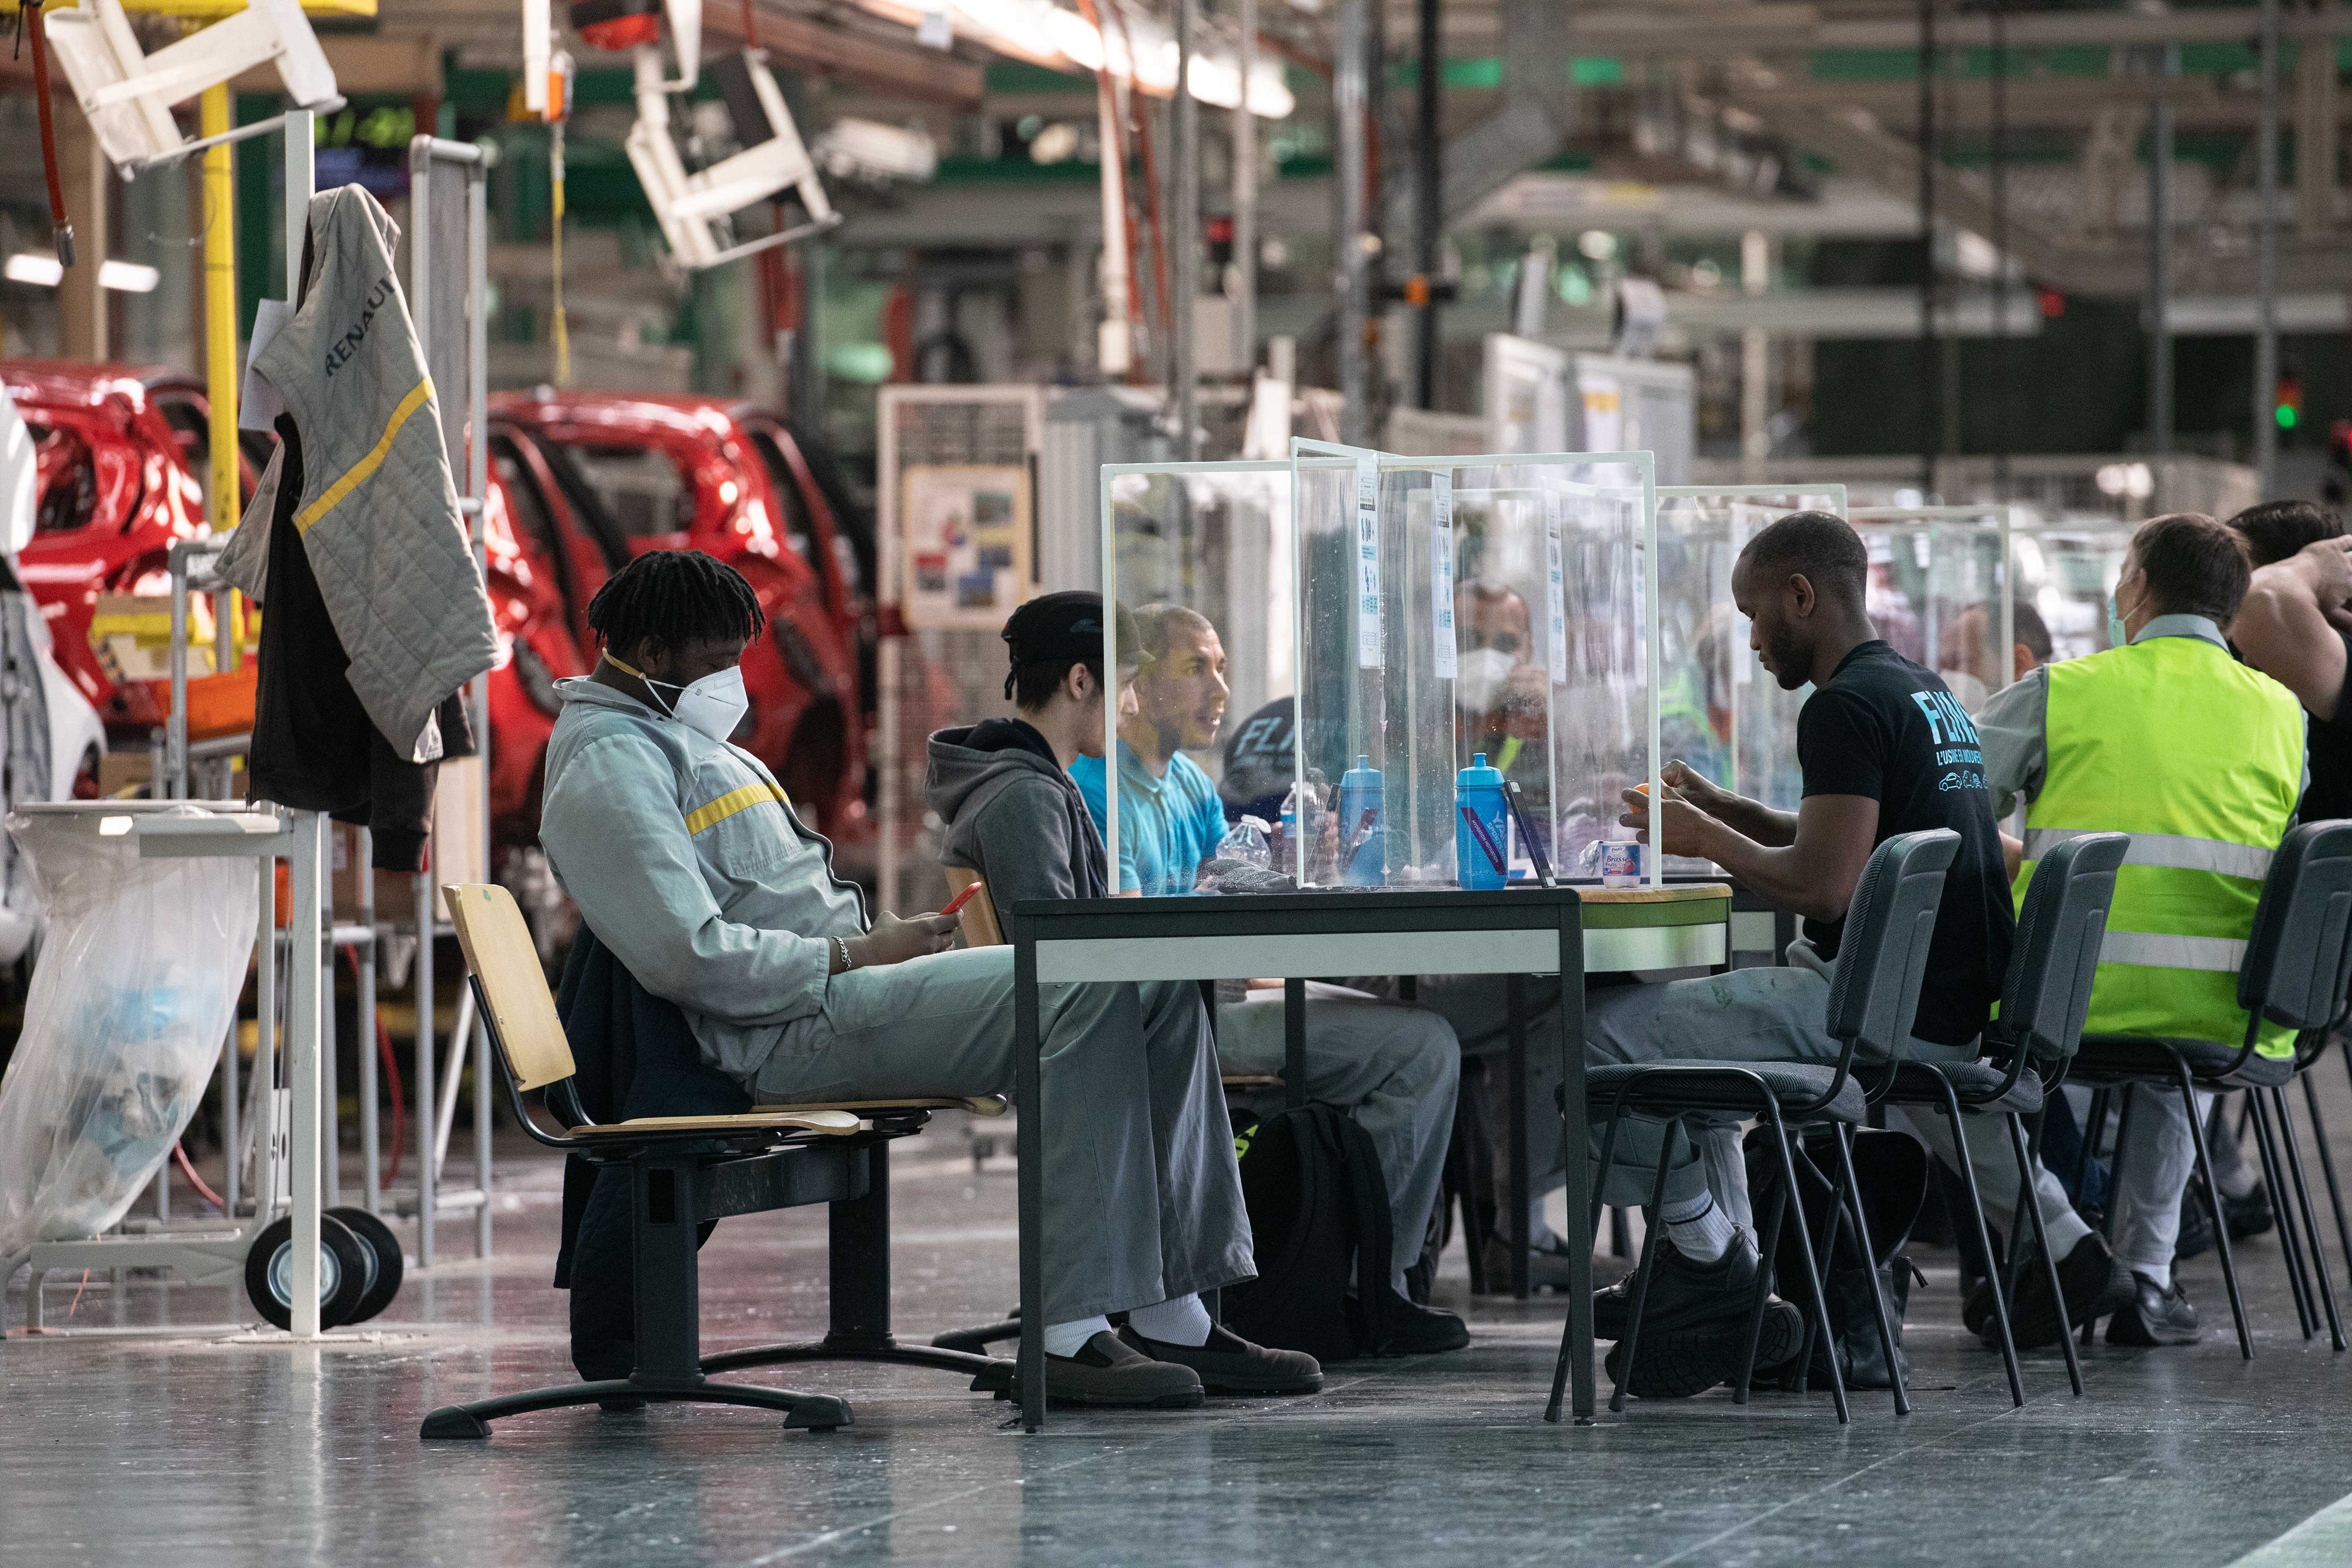 As safety of employees is of utmost importance, Renault has installed table top protective screens at assembly lines of its factory in France. It helps avoid unnecessary physical contact while workers spend time together during breaks. (Bloomberg)